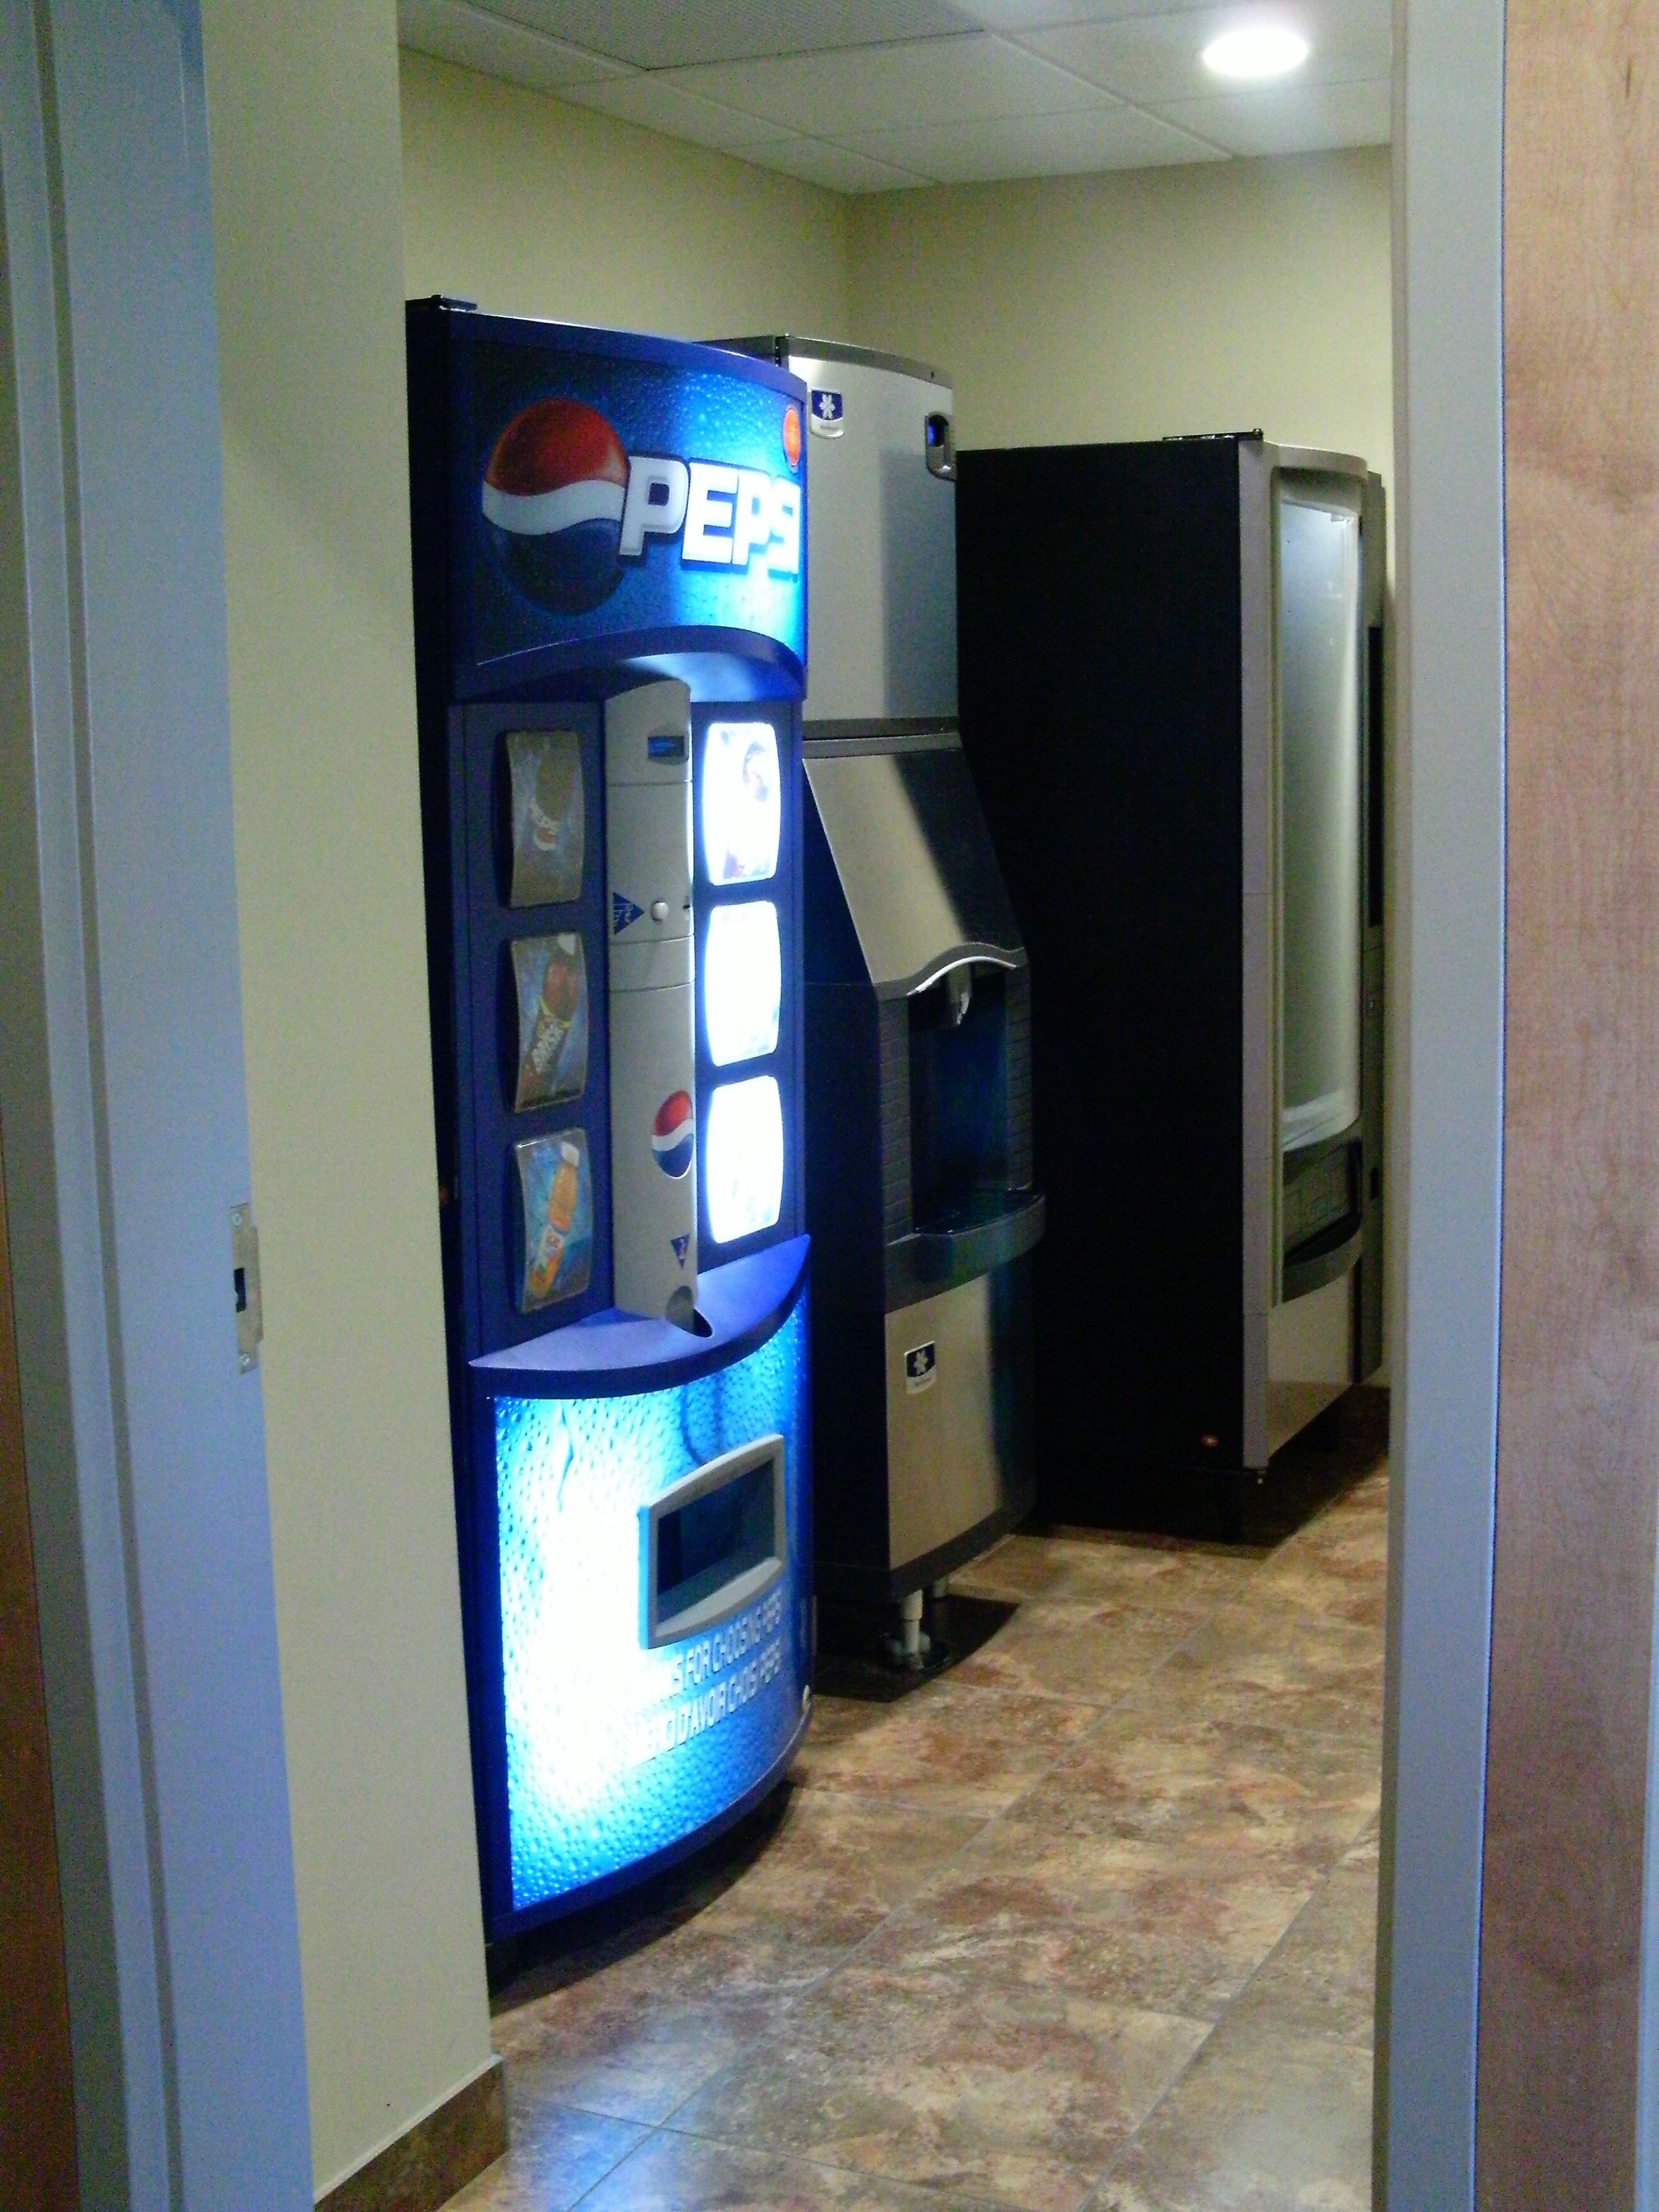 As You Can See This Hotel Lobby Is Fully Equipped Soda Machine Vending Manitowoc Ice